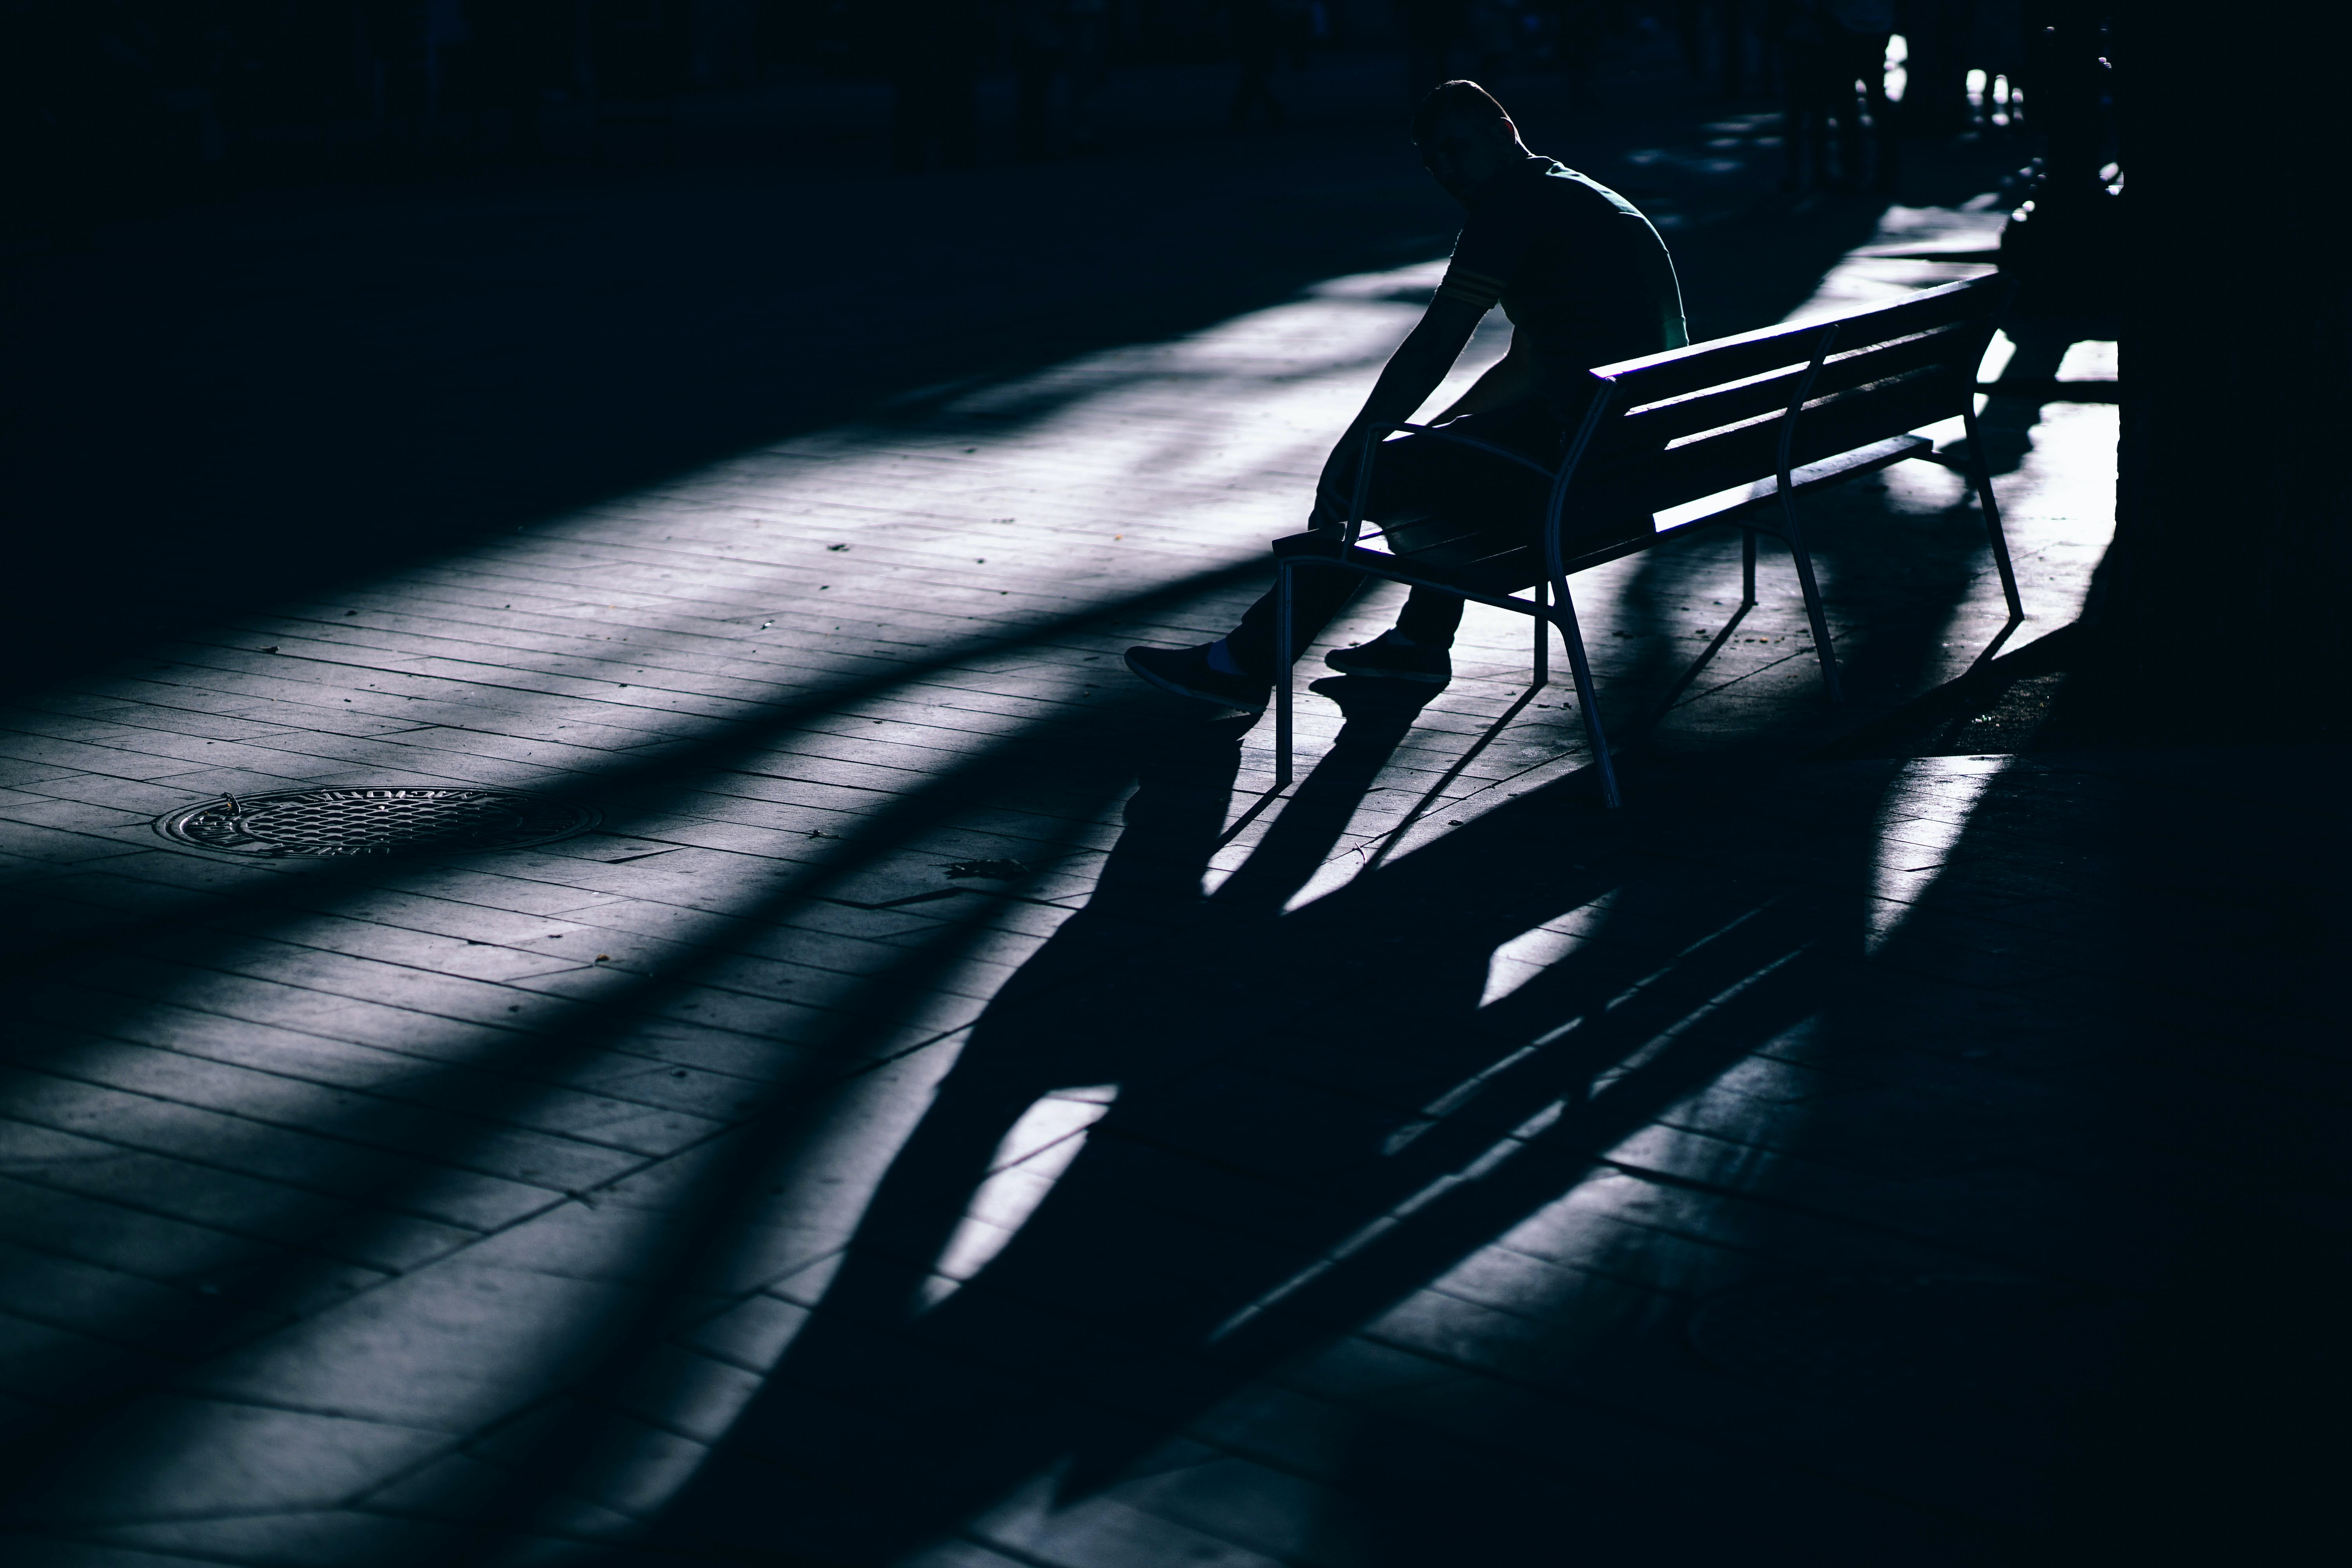 A dim shot of a person sitting on a bench and casting a long shadow